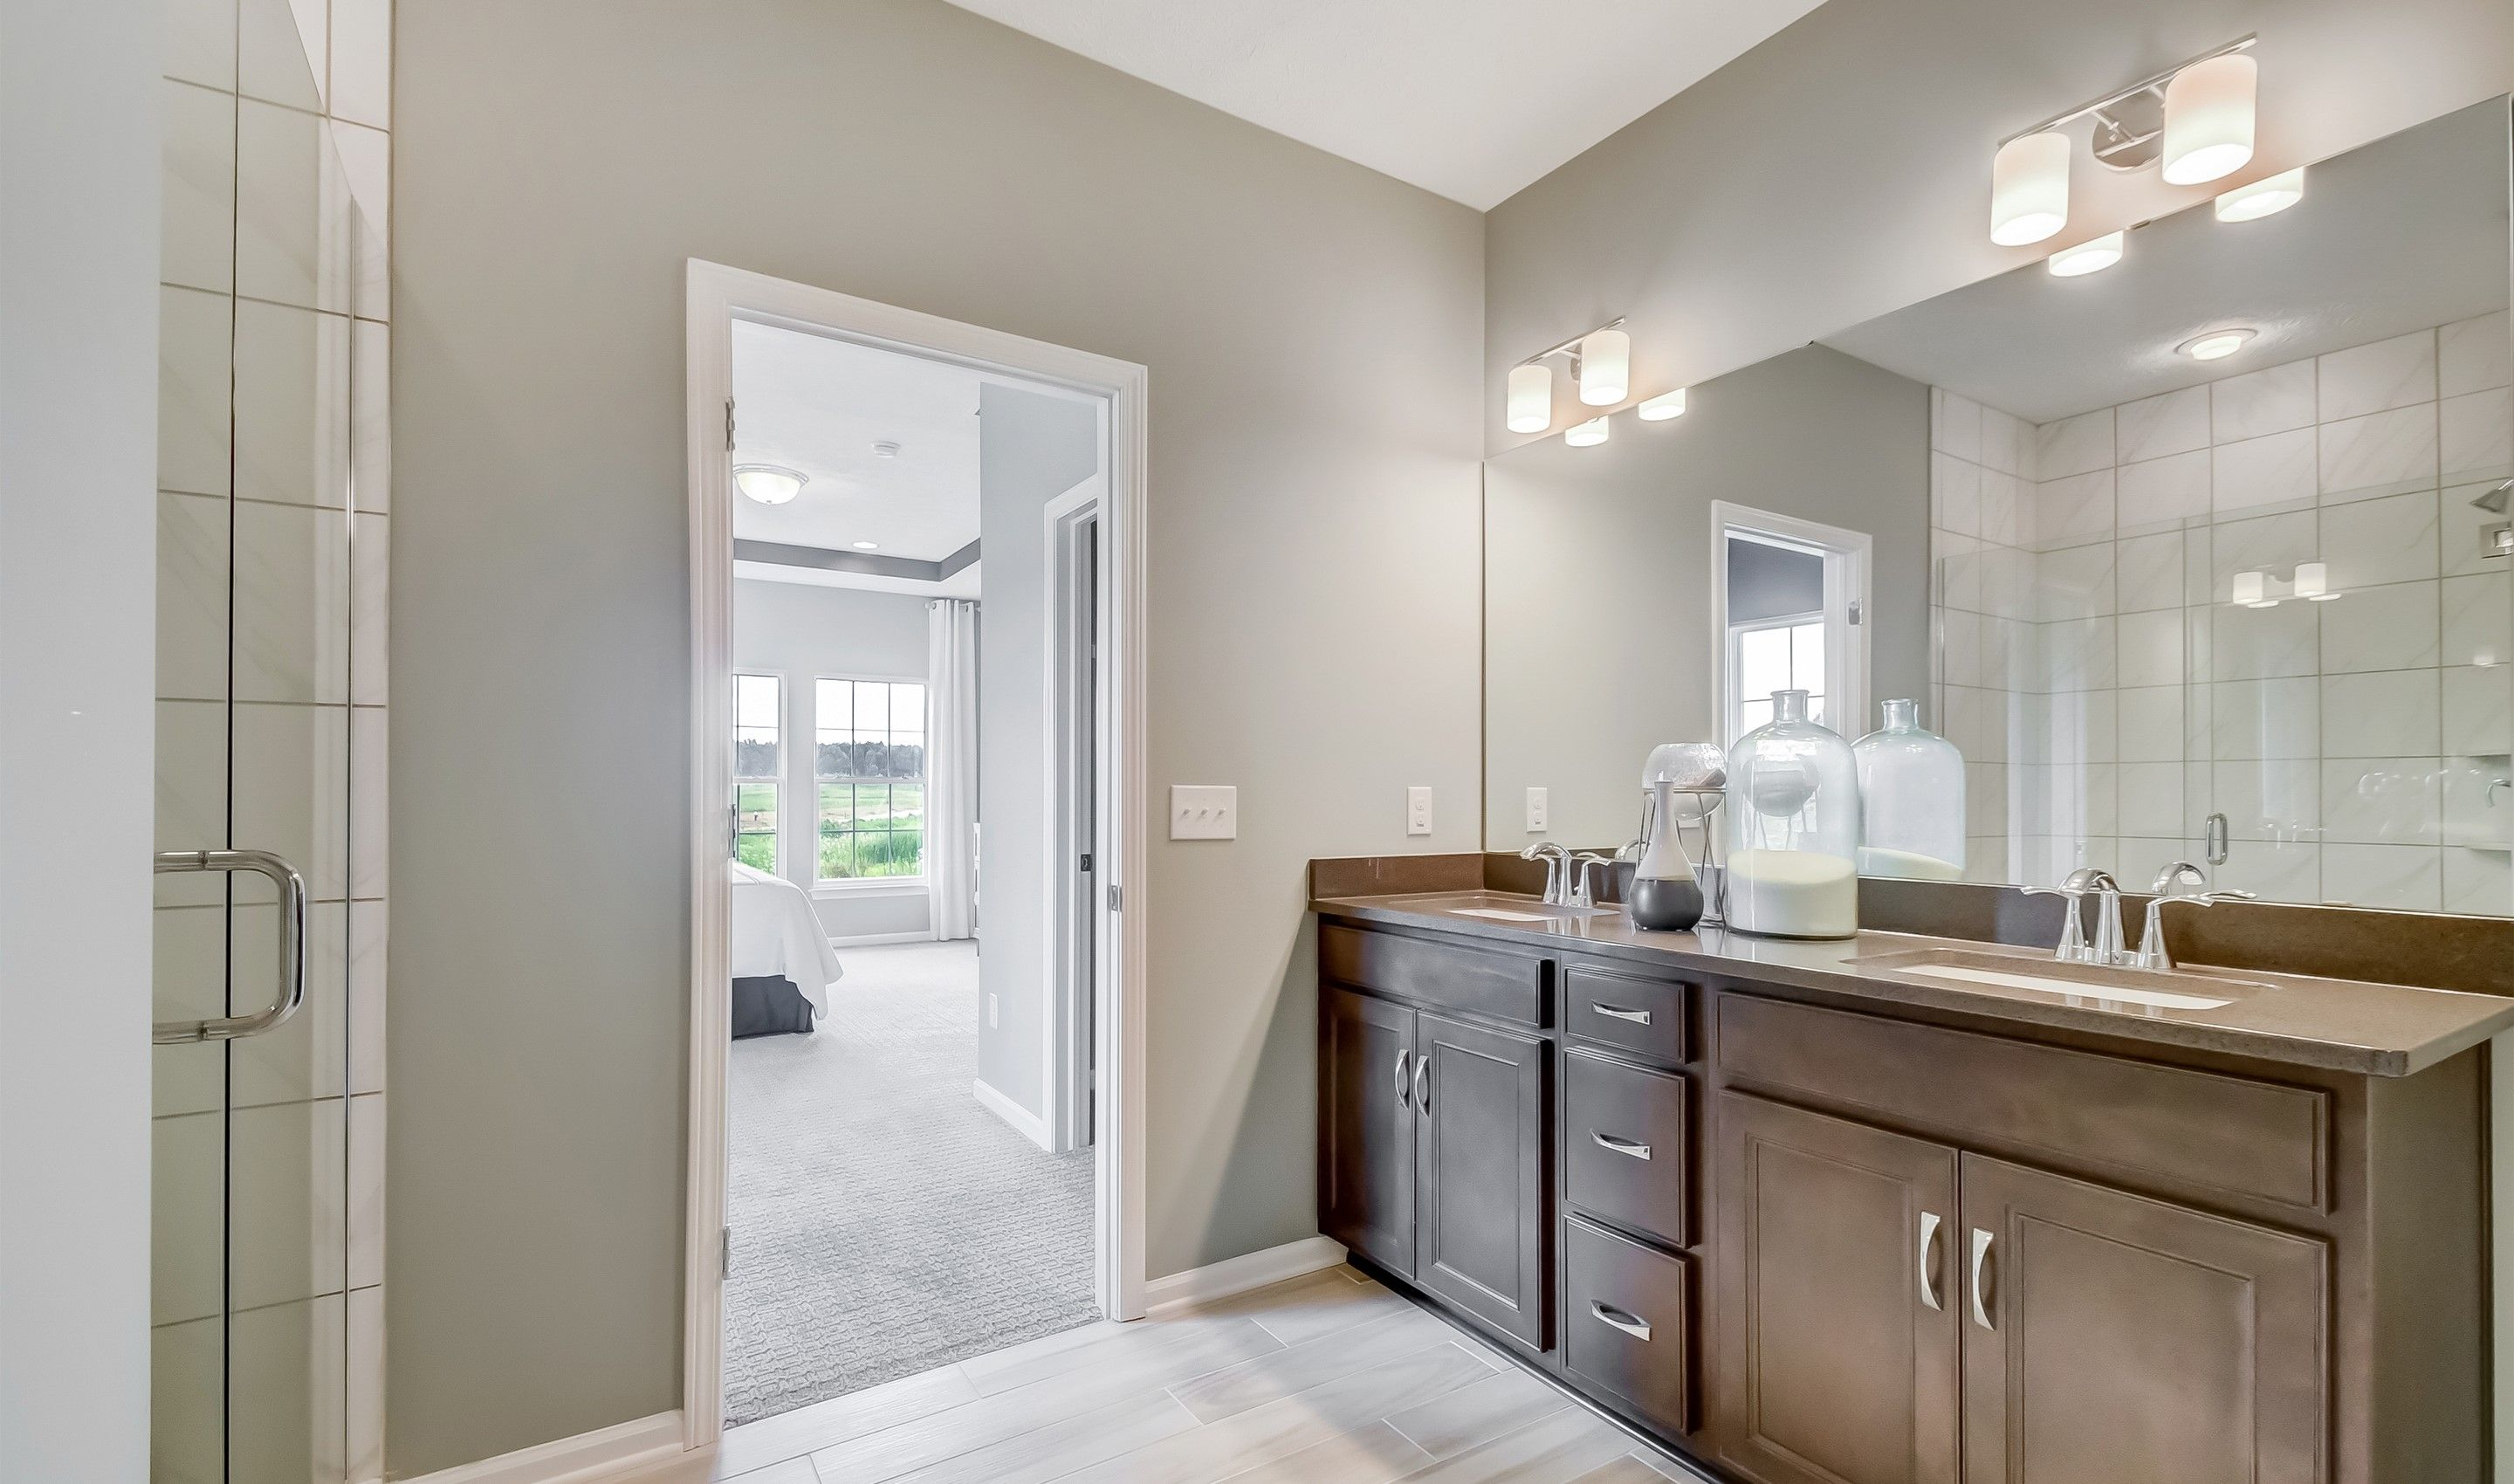 Bathroom featured in the Lakeport By K. Hovnanian® Homes in Cleveland, OH